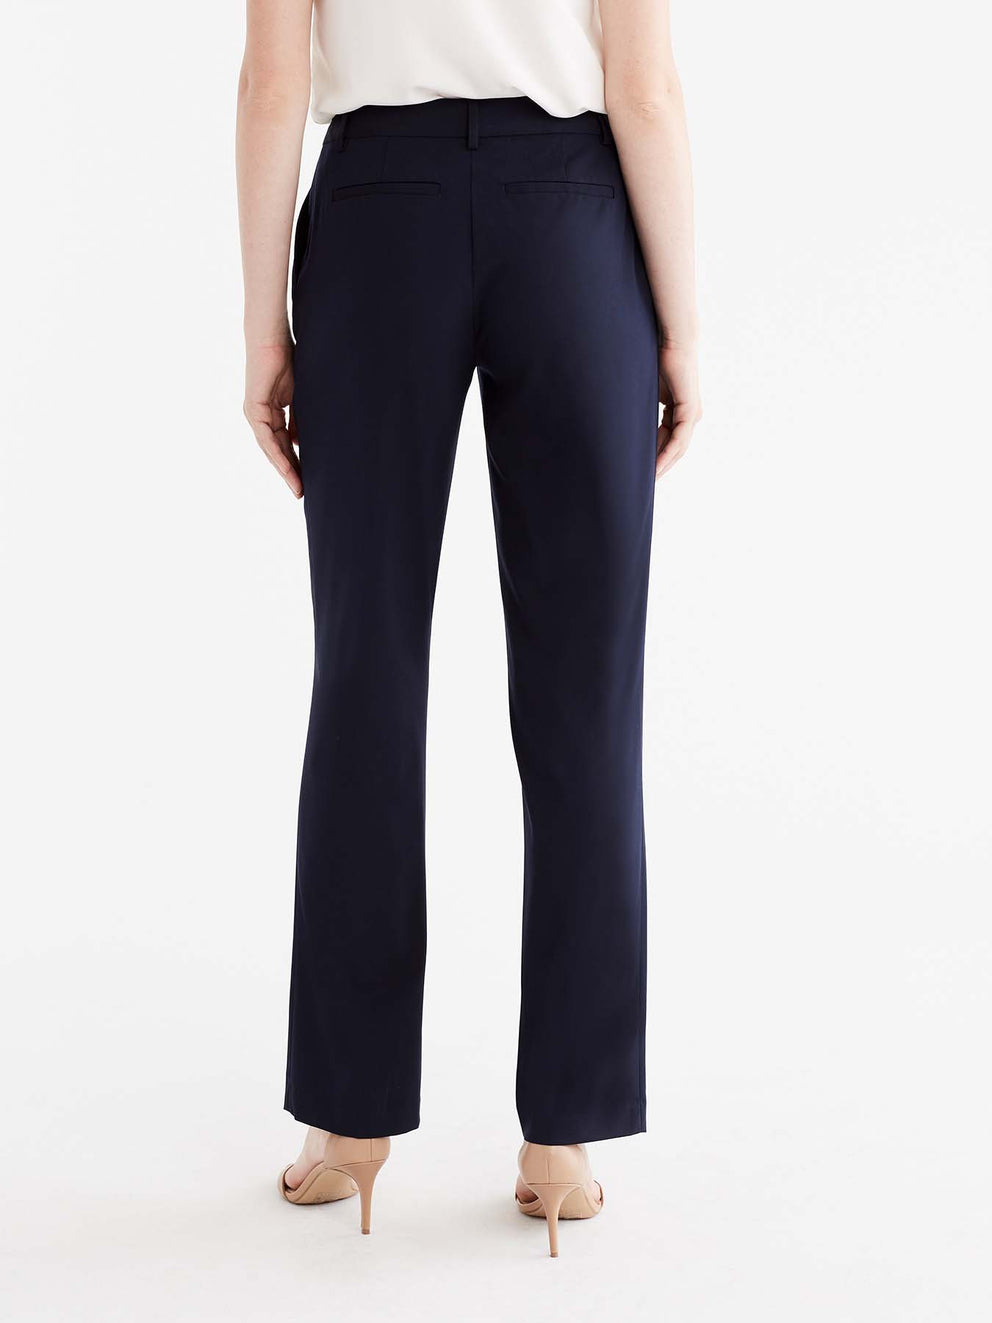 The Jones New York Washable Sydney Pant in color Navy - Image Position 6